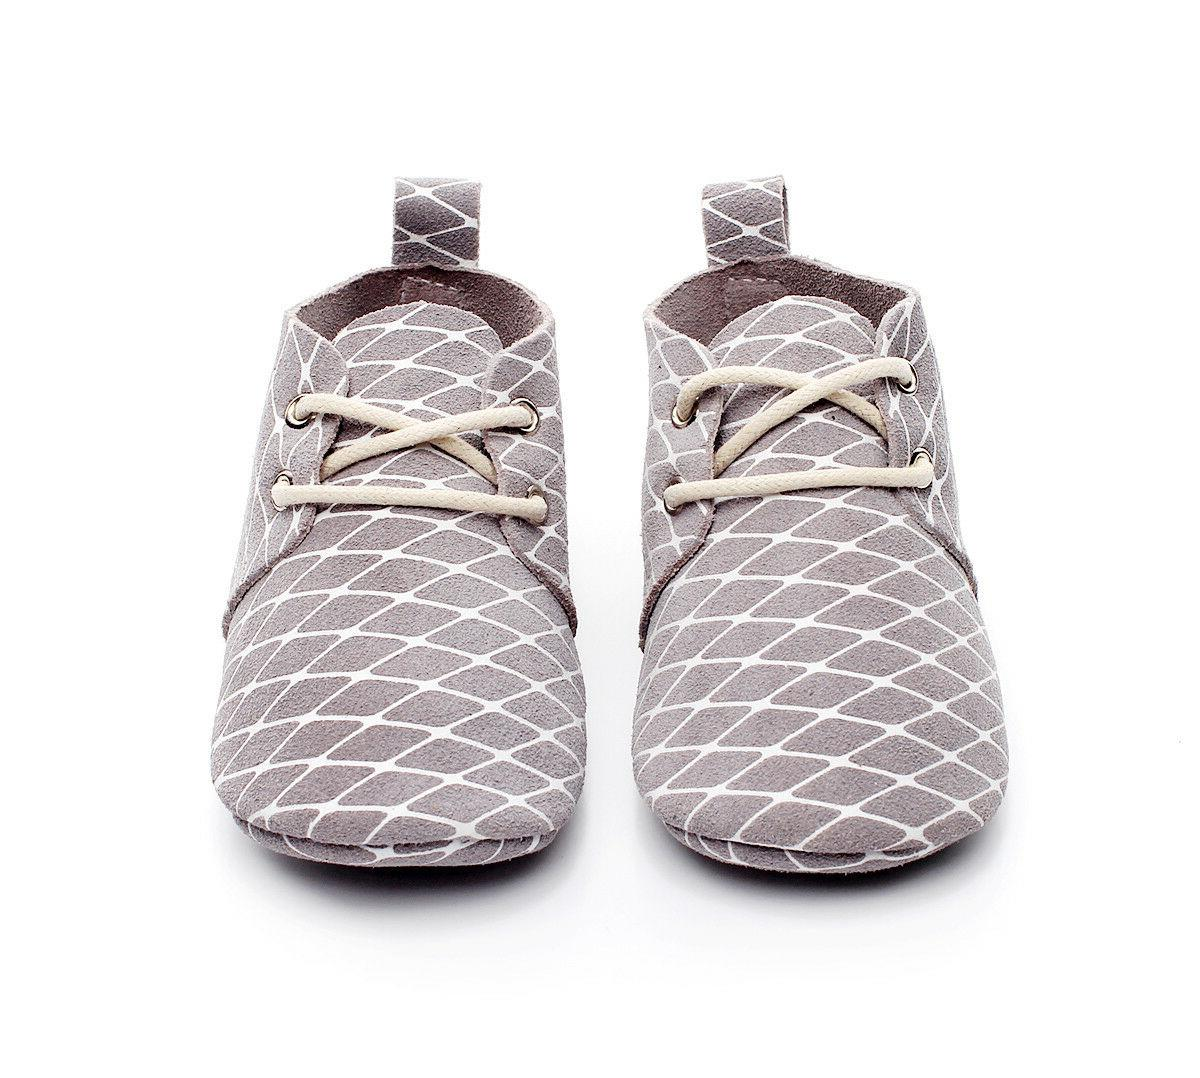 Genuine Leather Animal Mesh Print Shoes Infant